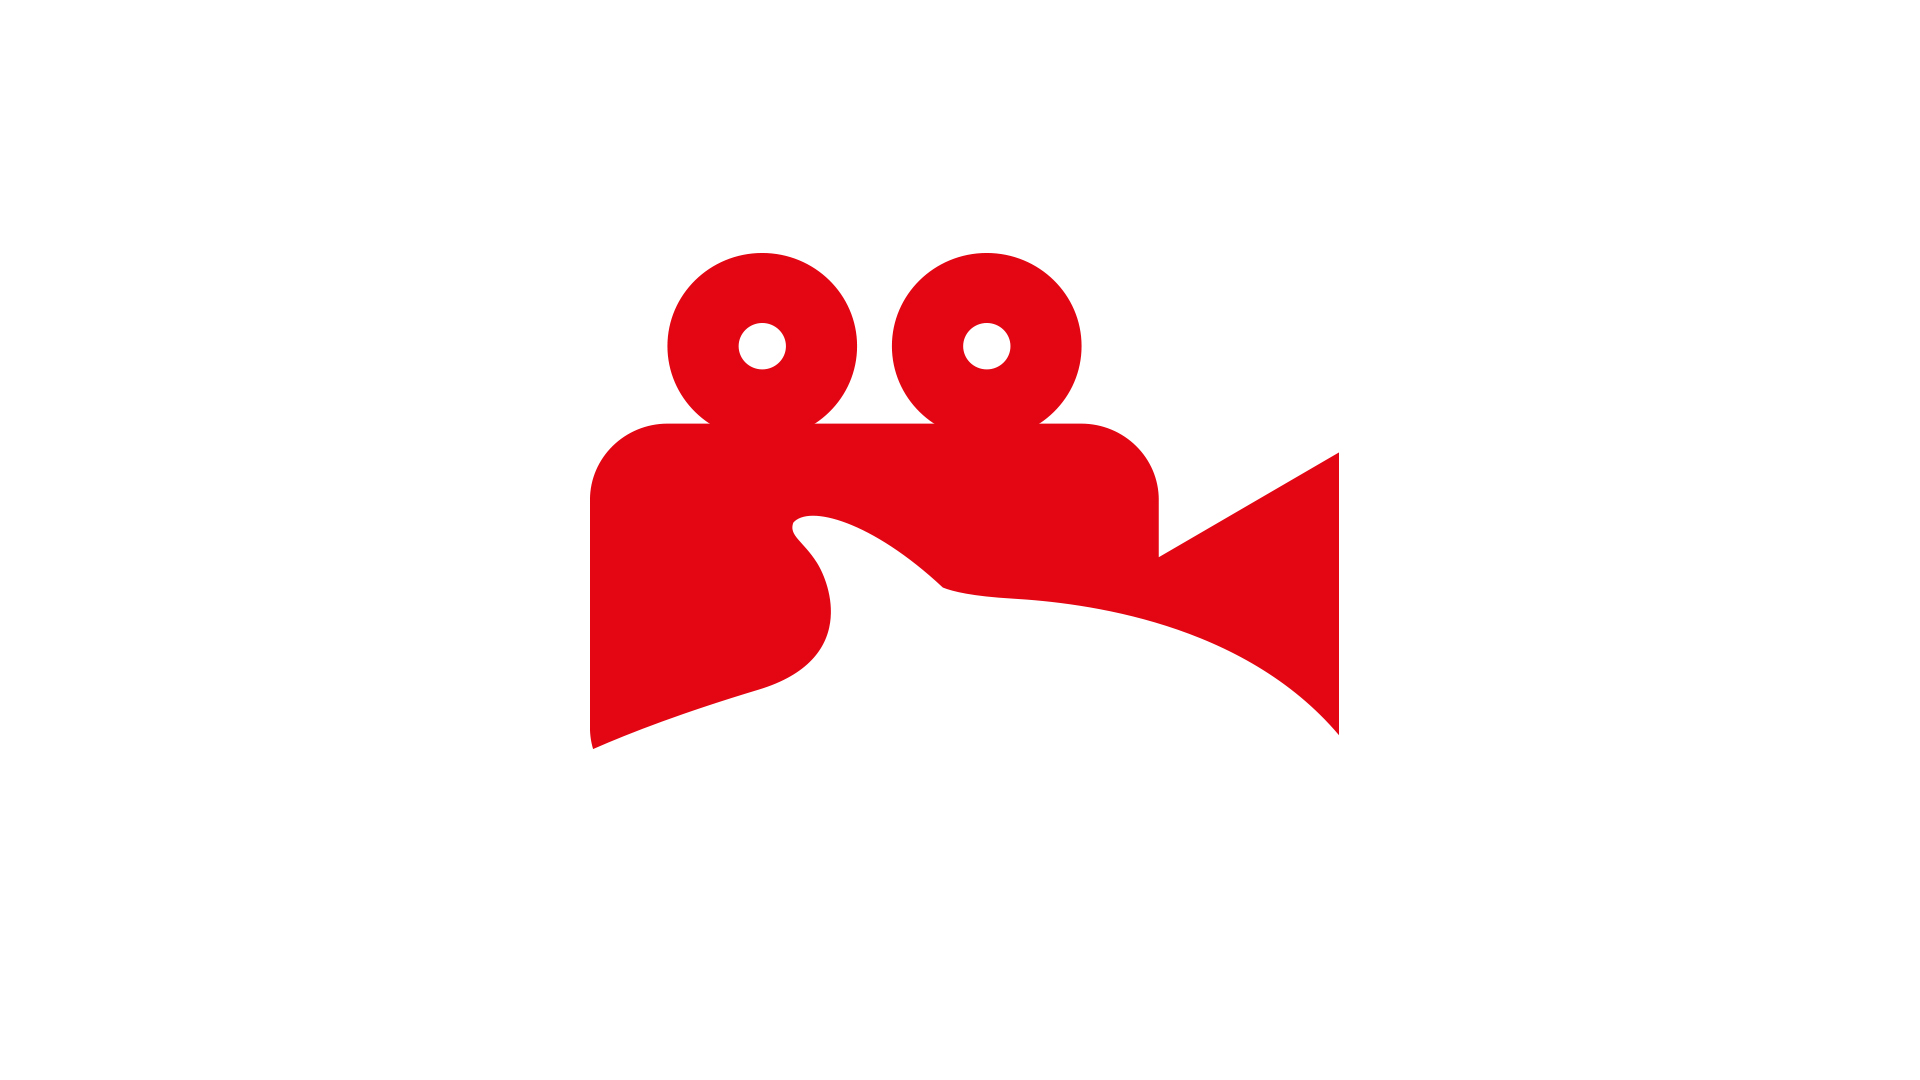 Godolphin And Latymer School fundraiser film brand logo red